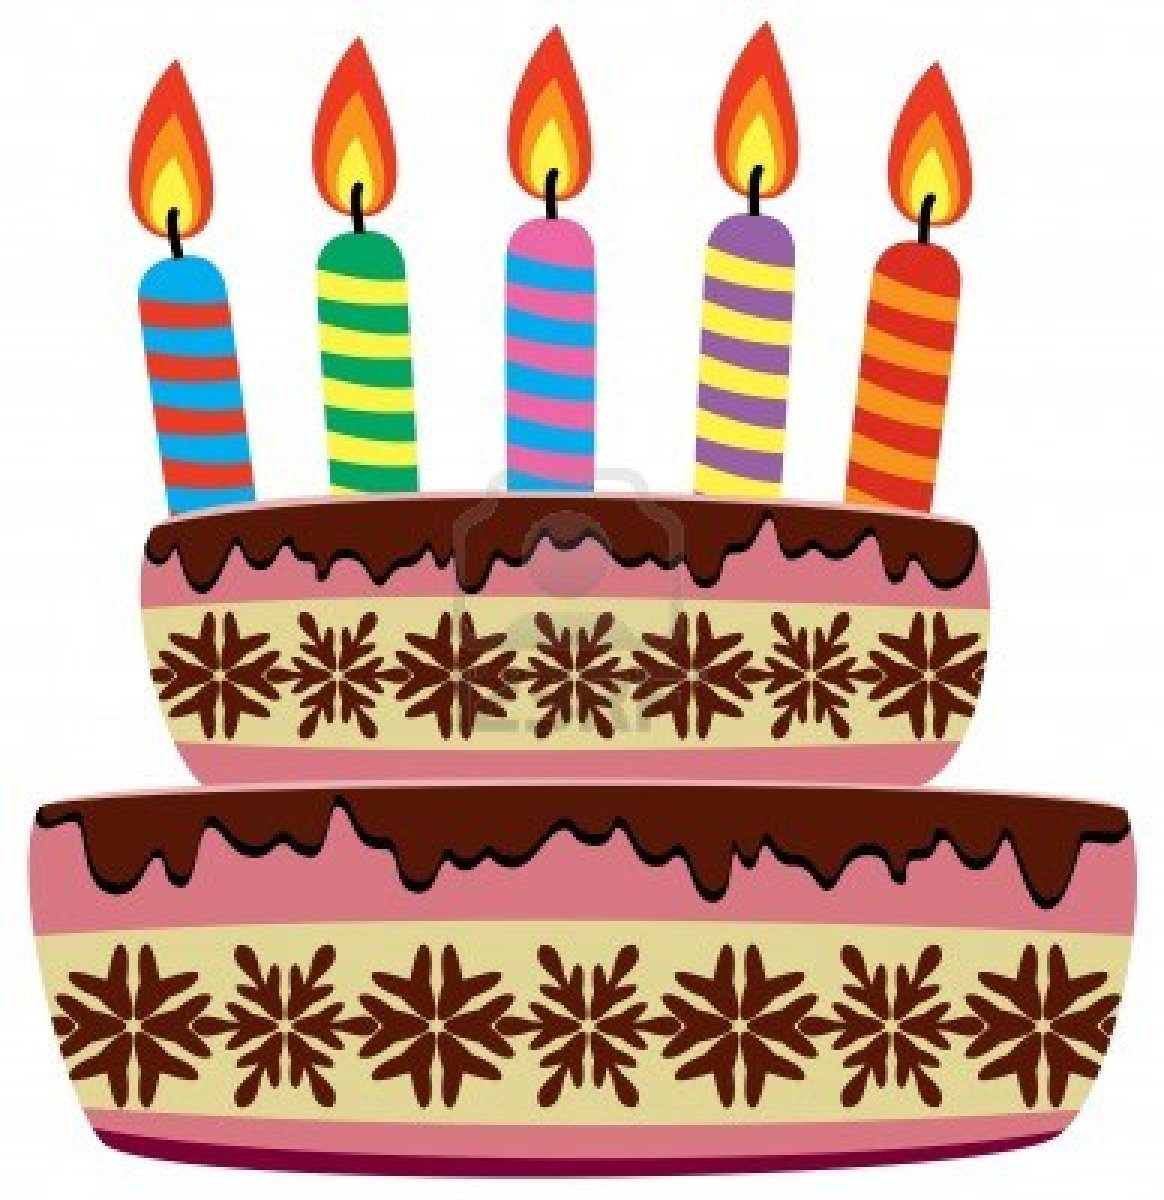 Moving Birthday Cake Clip Art : Birthday Cake Clip Art Free Animated - ClipArt Best